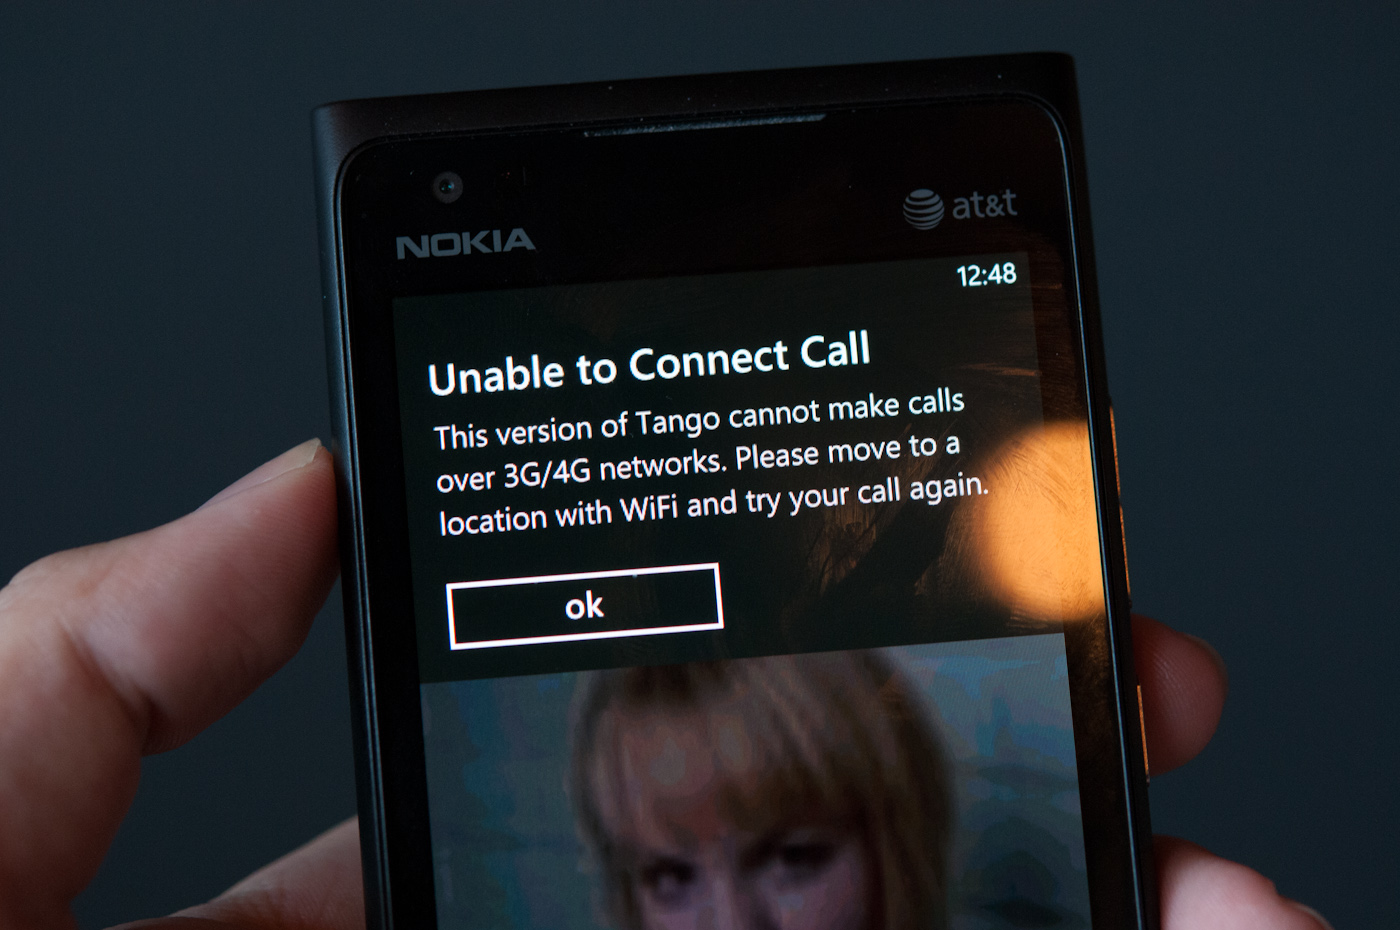 WP7 5 and Preloaded Applications - Nokia Lumia 900 Review